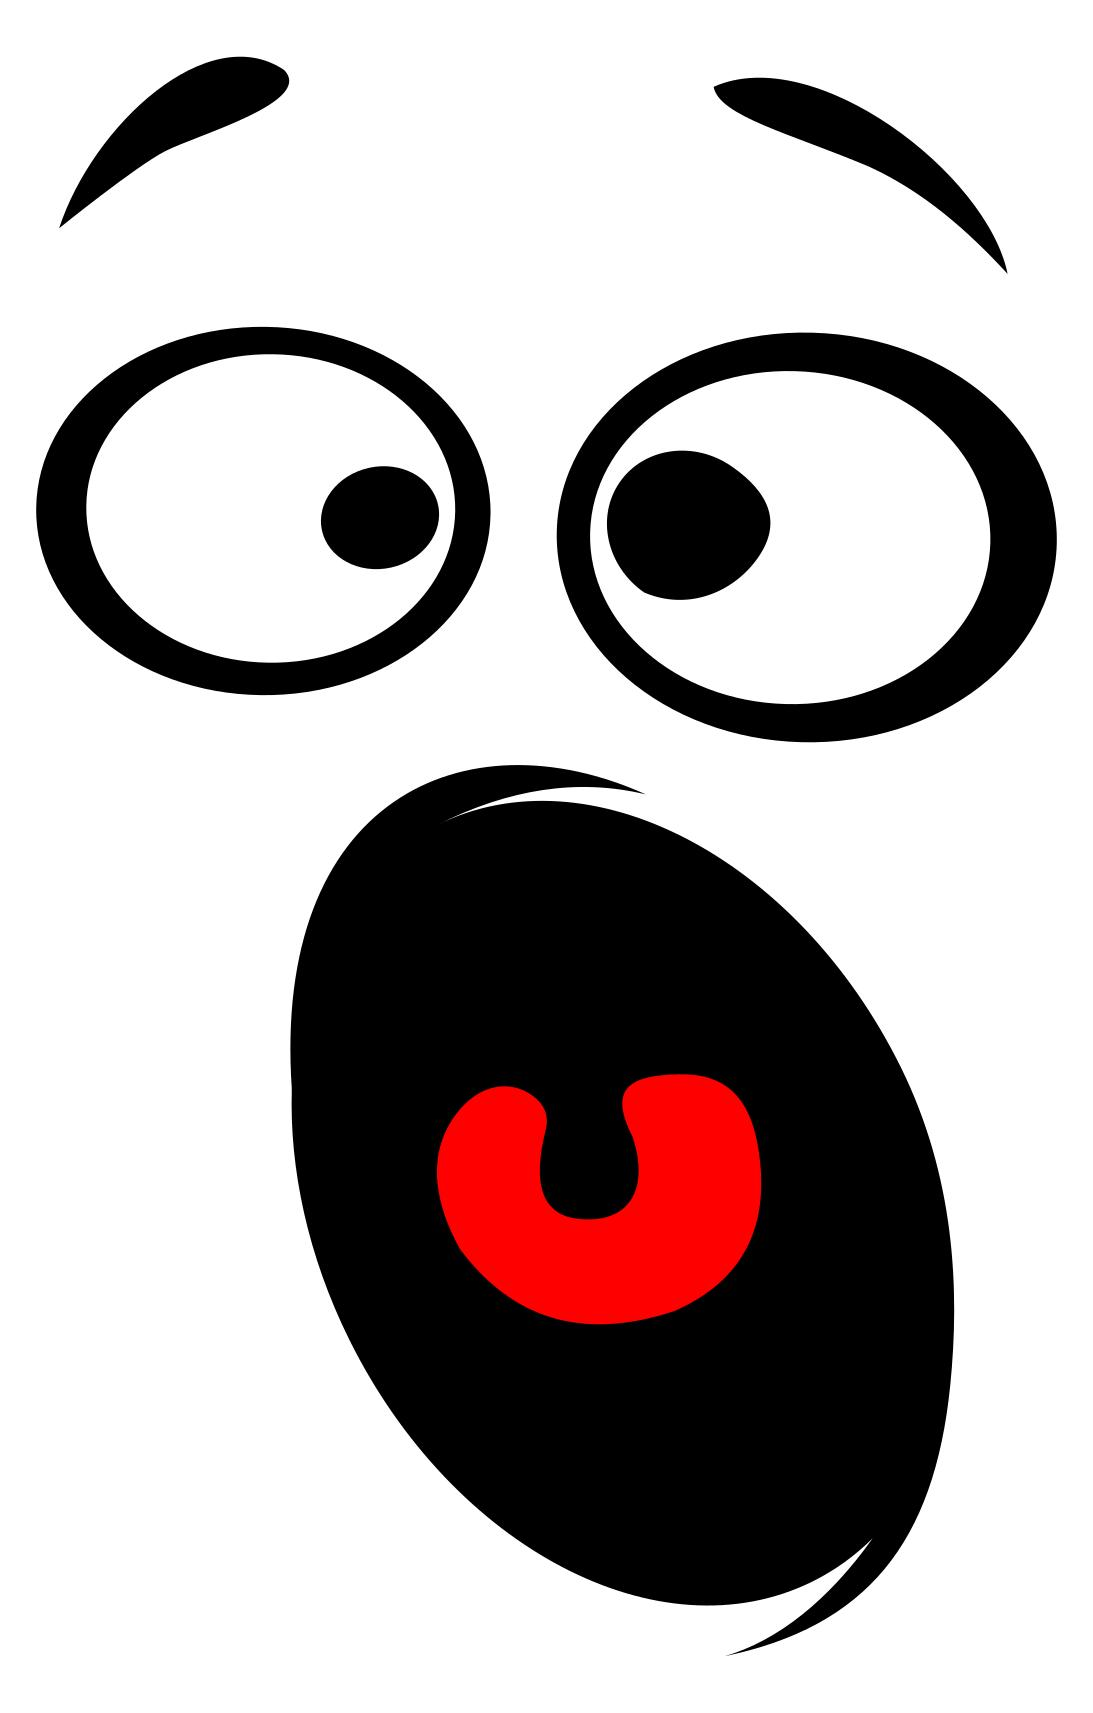 1093x1713 Horrified Smiley Face Silhouette Clipart